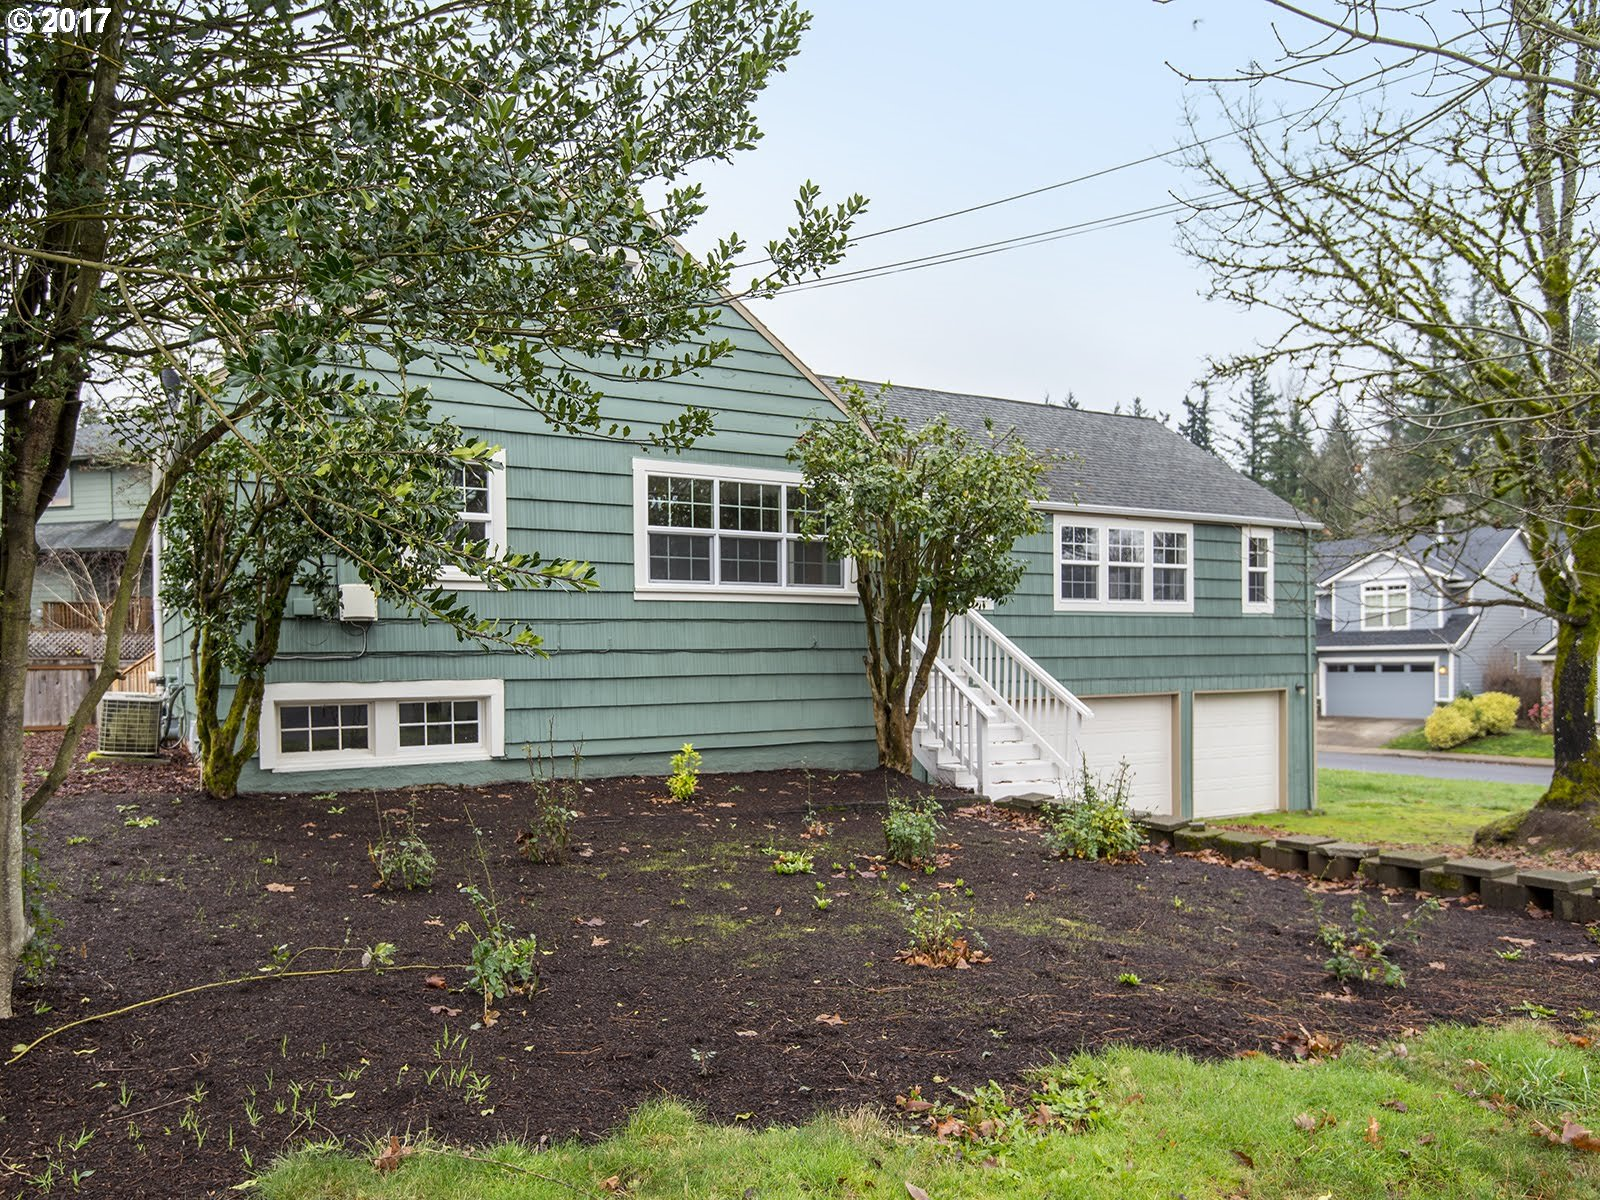 3032 sq. ft 3 bedrooms 2 bathrooms  House For Sale,Portland, OR